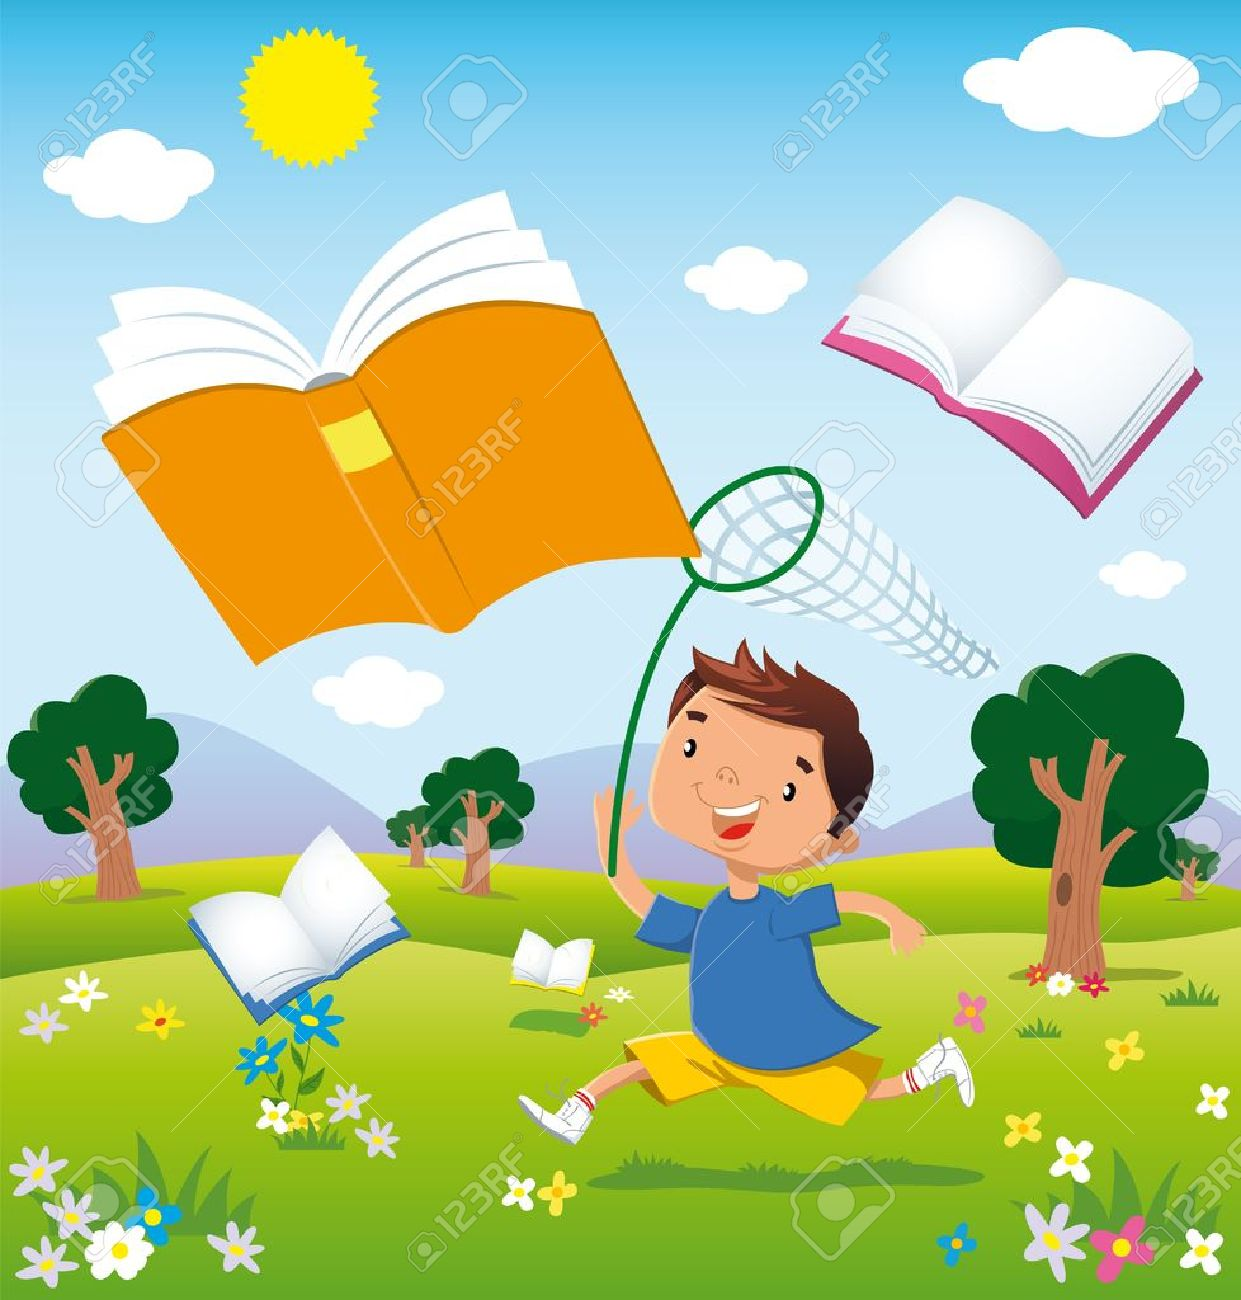 a child running through the fields in bloom chasing flying books Stock Vector - 21579716